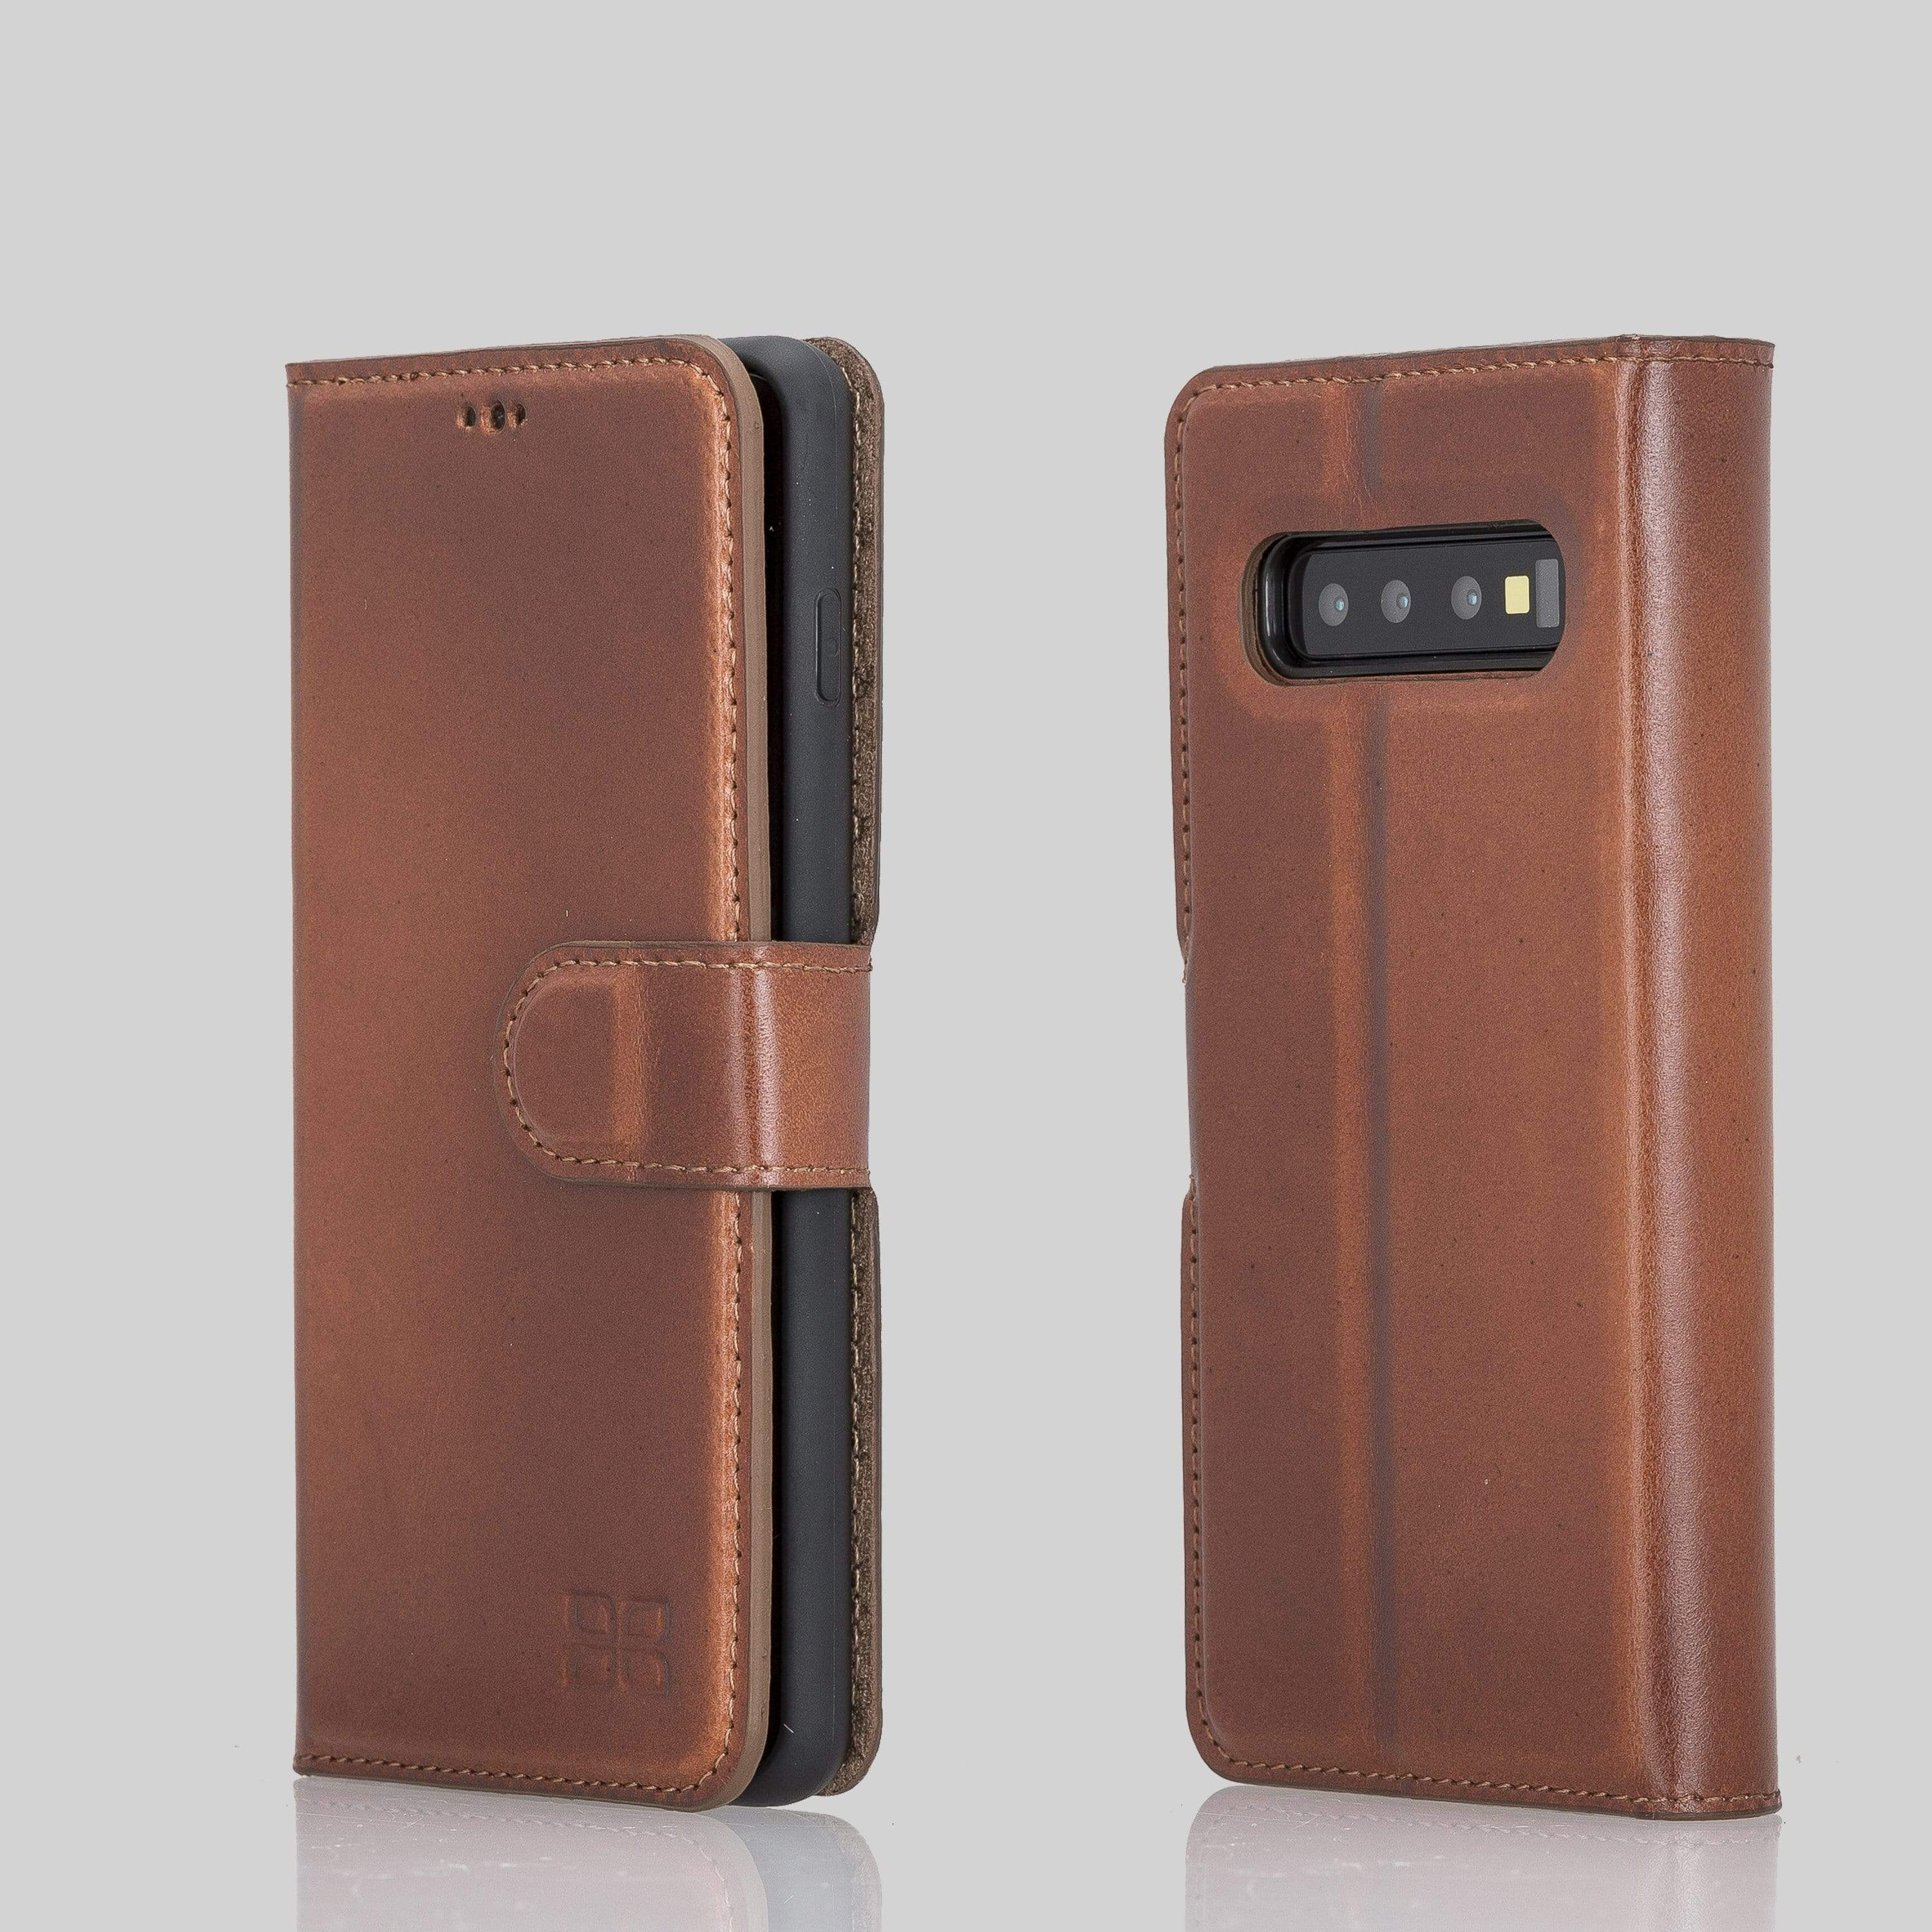 Phone Case Magnetic Detachable Leather Wallet Case for Samsung Galaxy S10 Plus - Tiguan Tan with Vein Bouletta Shop